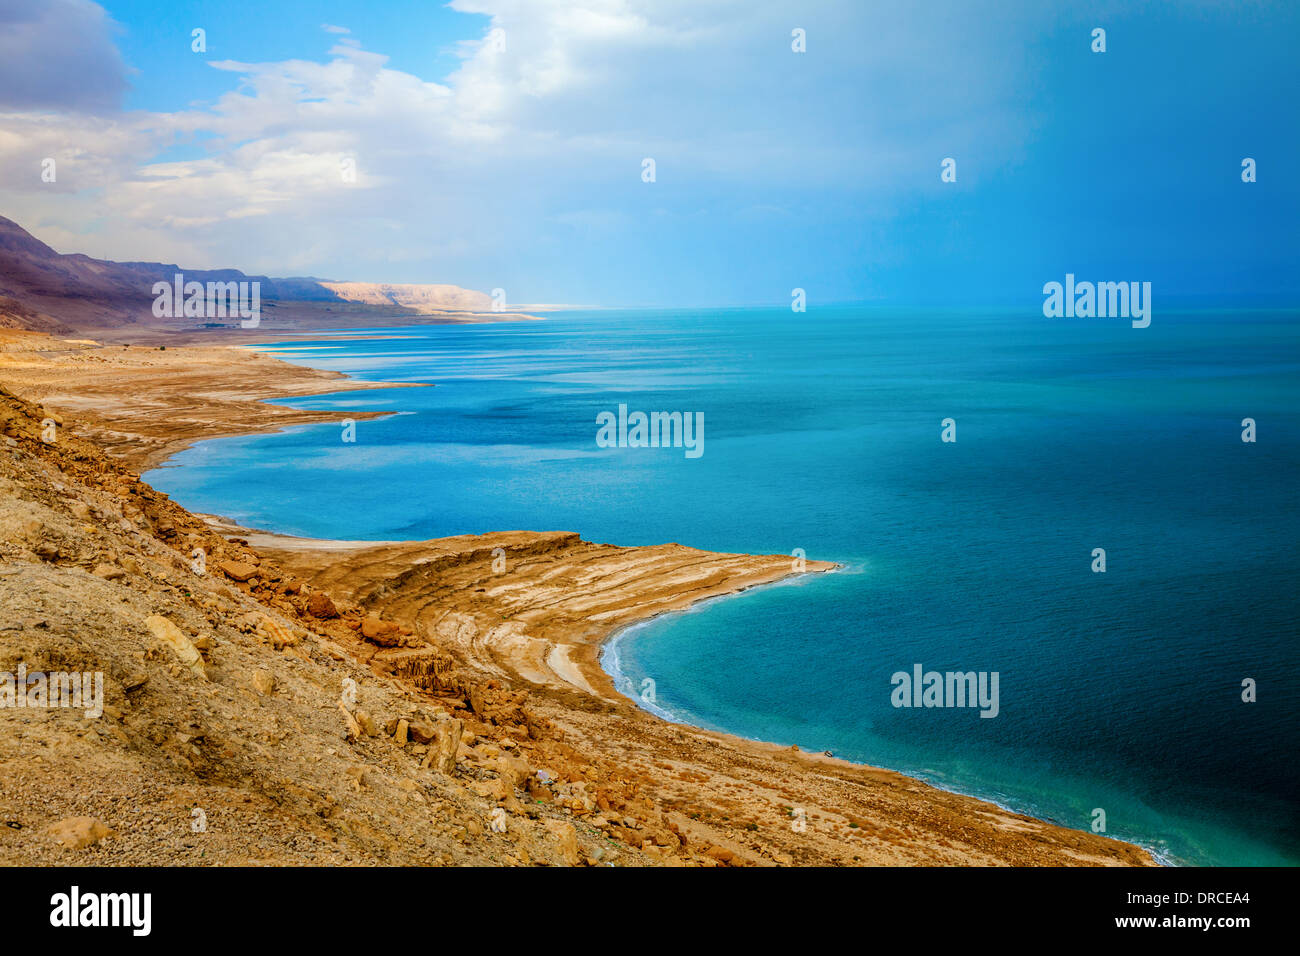 Dead Sea in Israel during storm - Stock Image